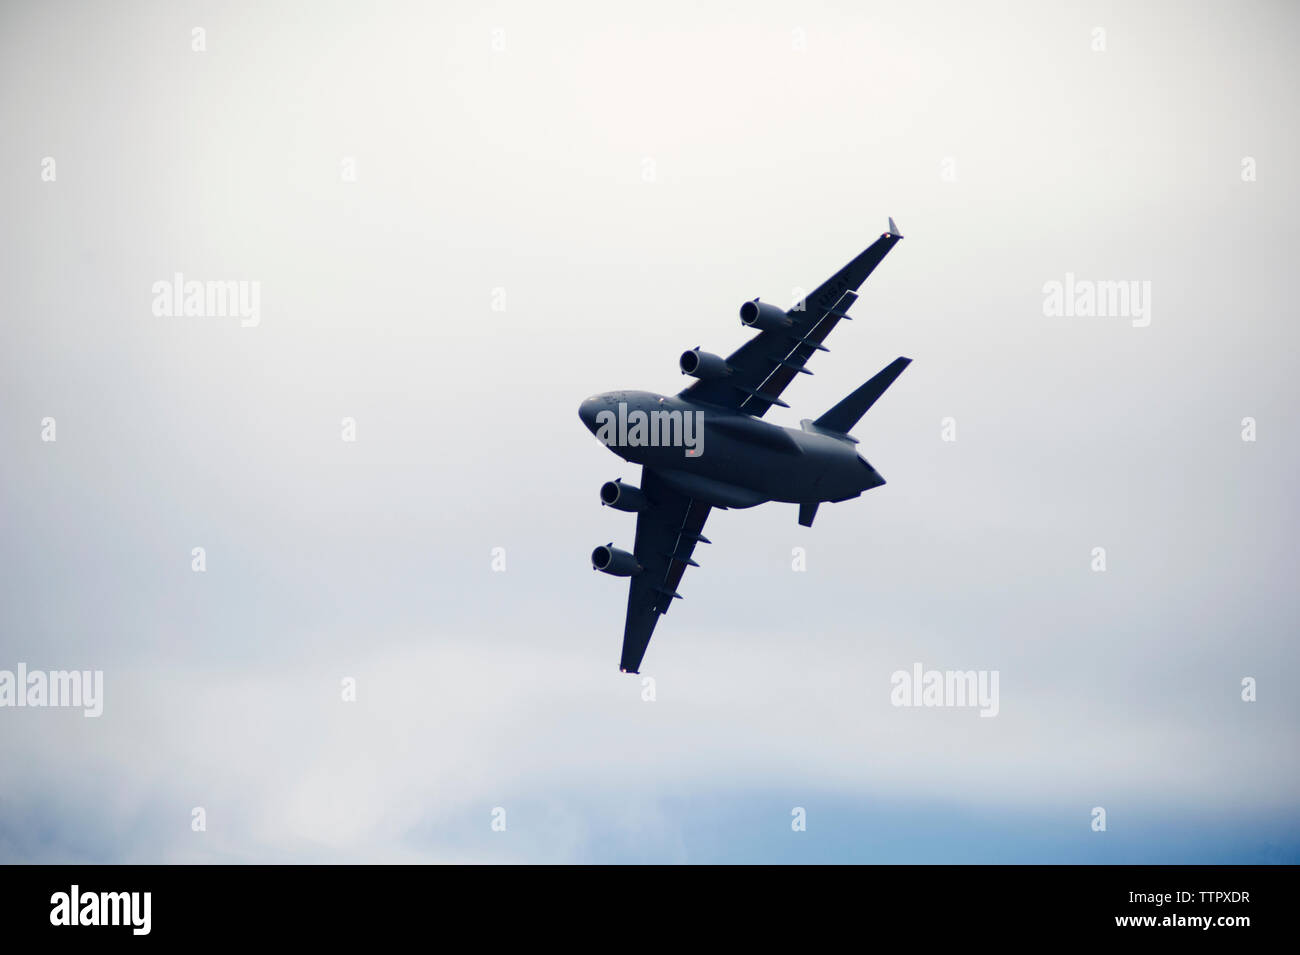 Low angle view of military airplane flying in sky - Stock Image